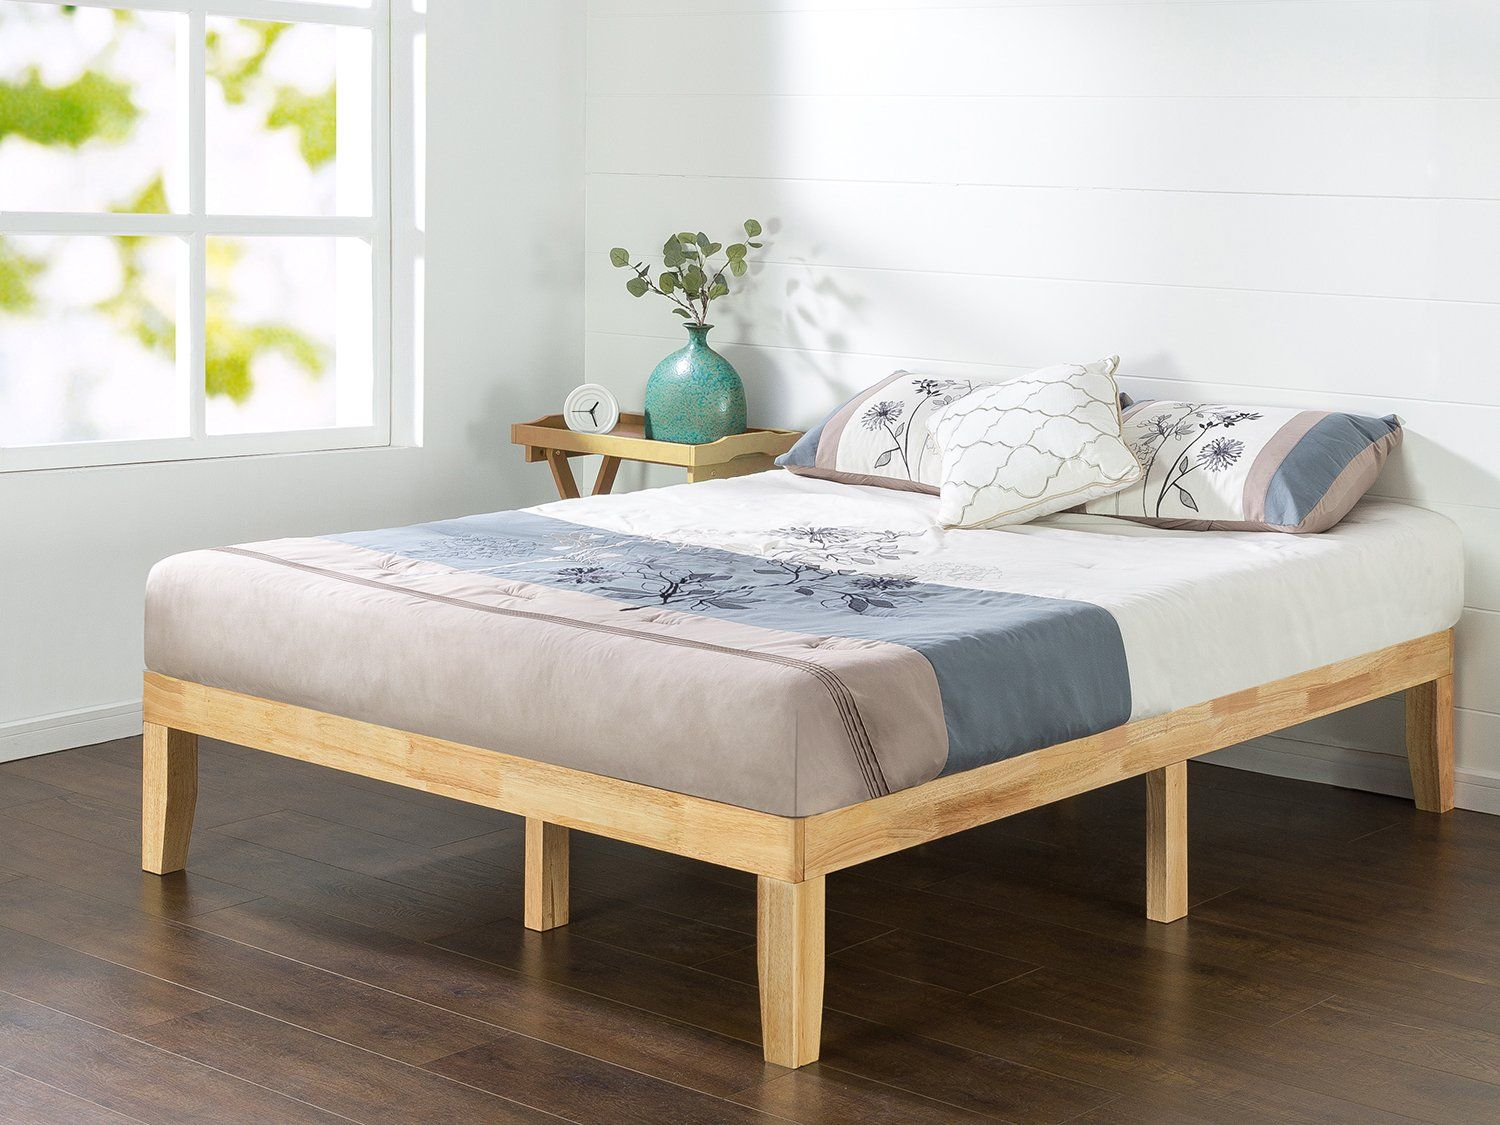 Zinus 14 Inch Wood Platform Bed / No Boxspring Needed / Wood Slat ...